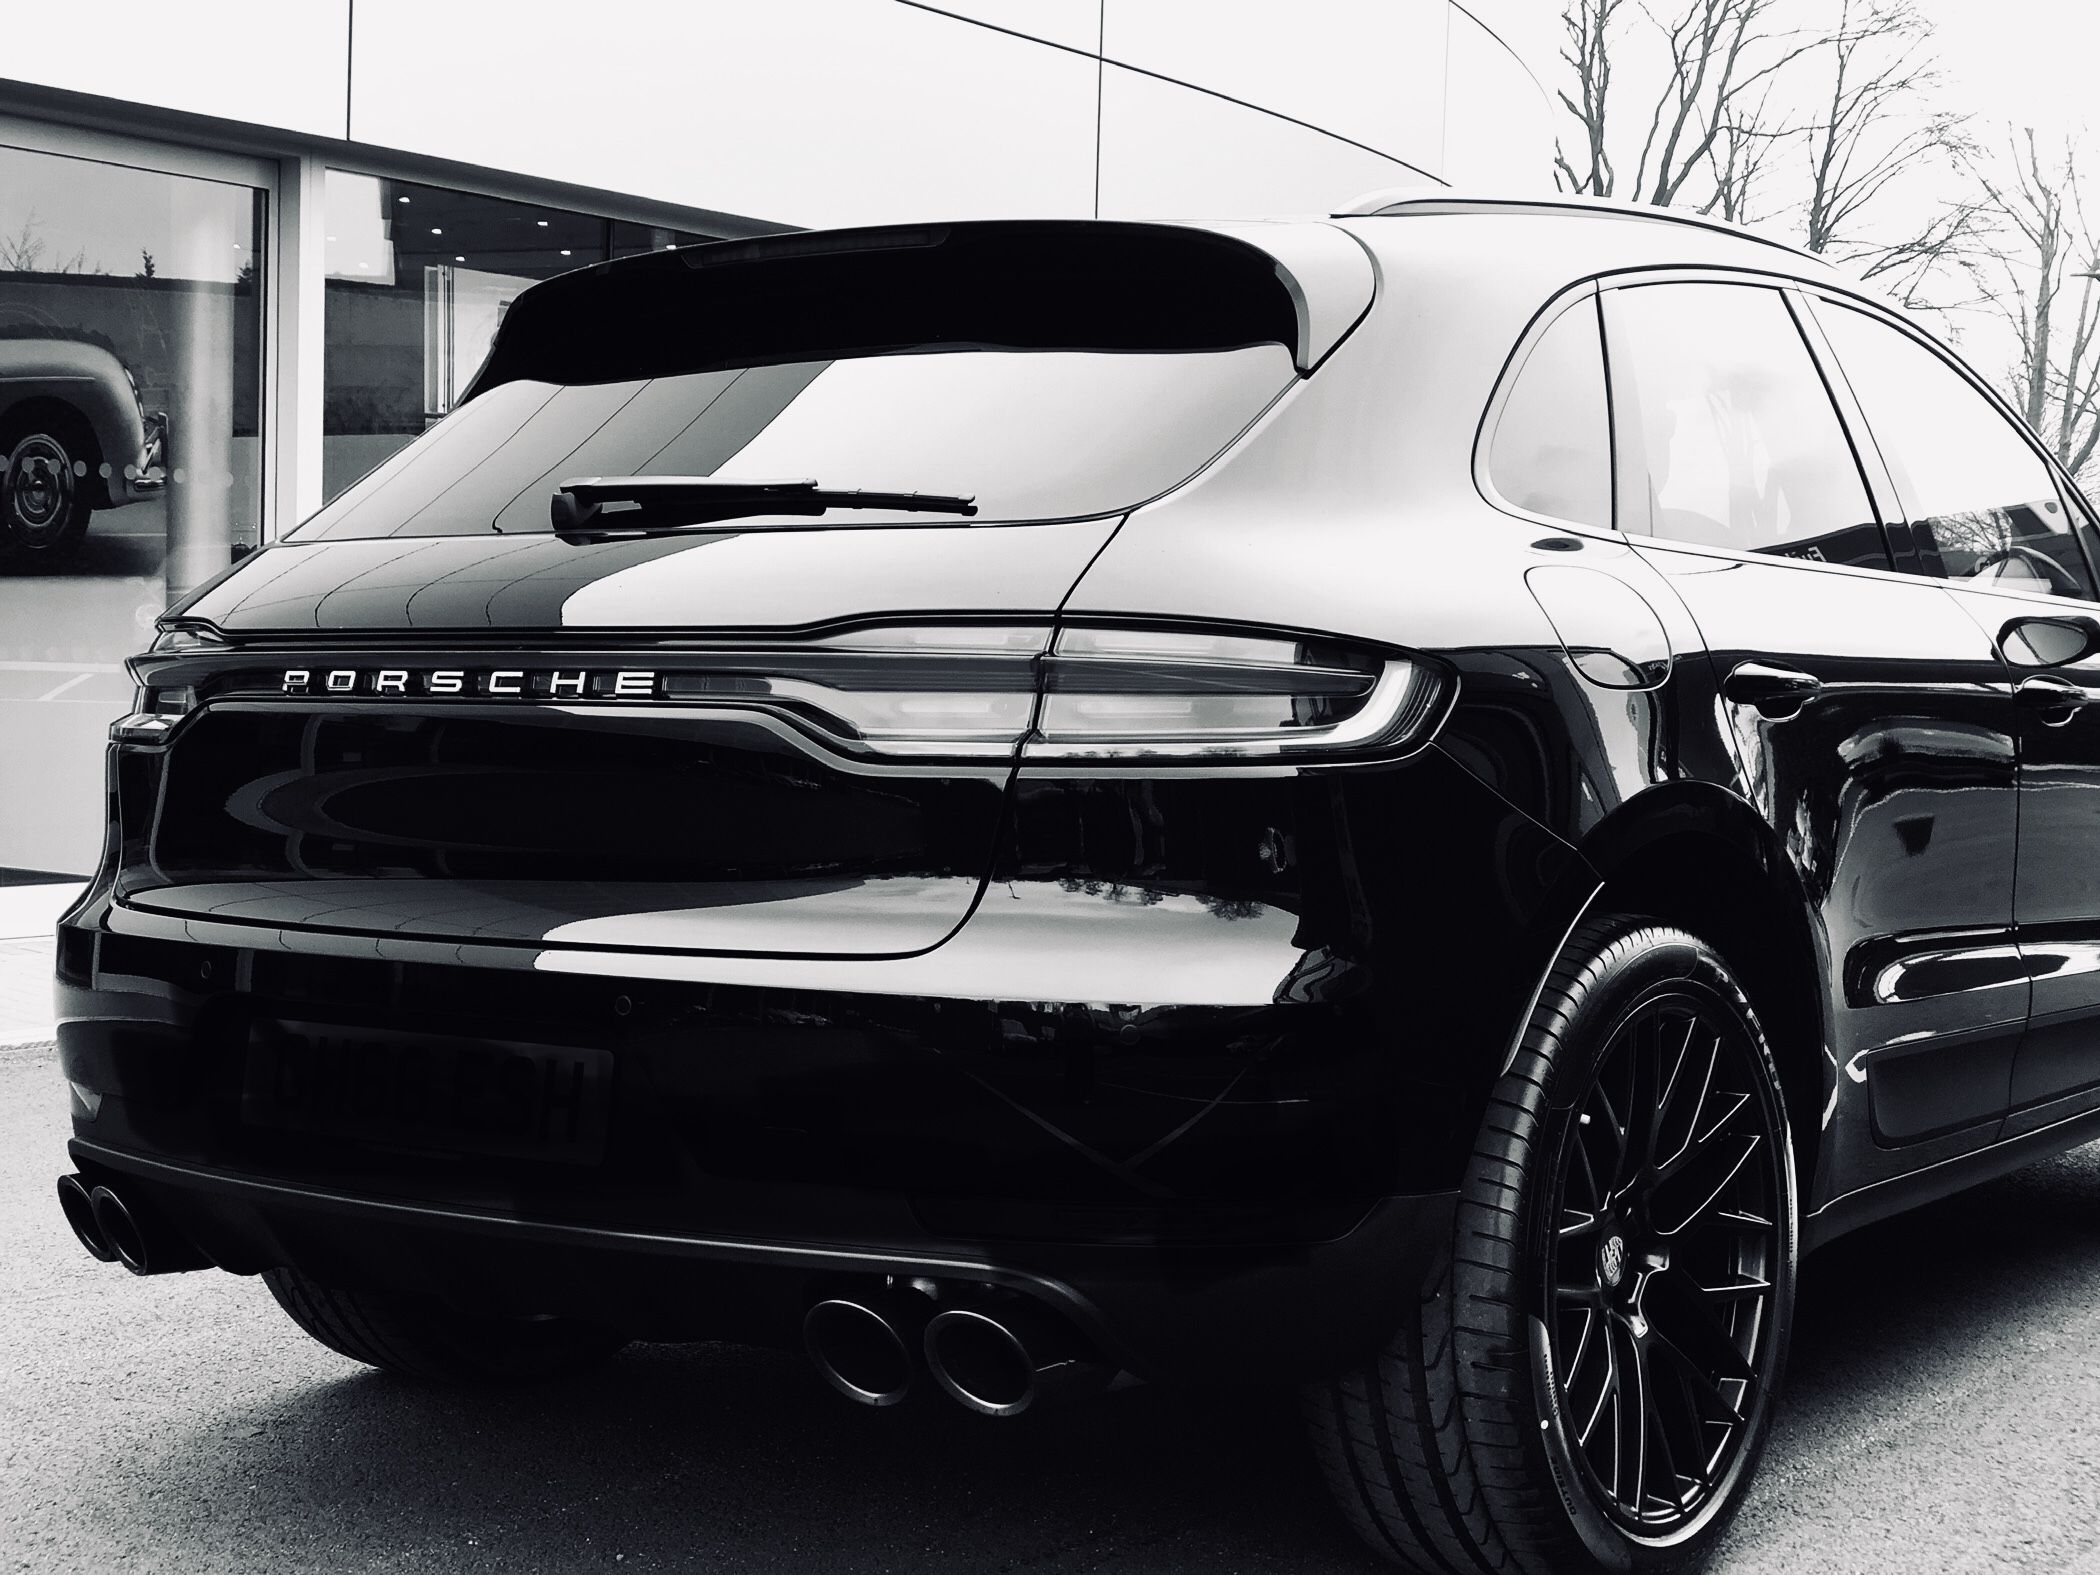 2019 New Porsche Macan Awd At Porsche North Scottsdale Serving Phoenix Az Iid 18983974